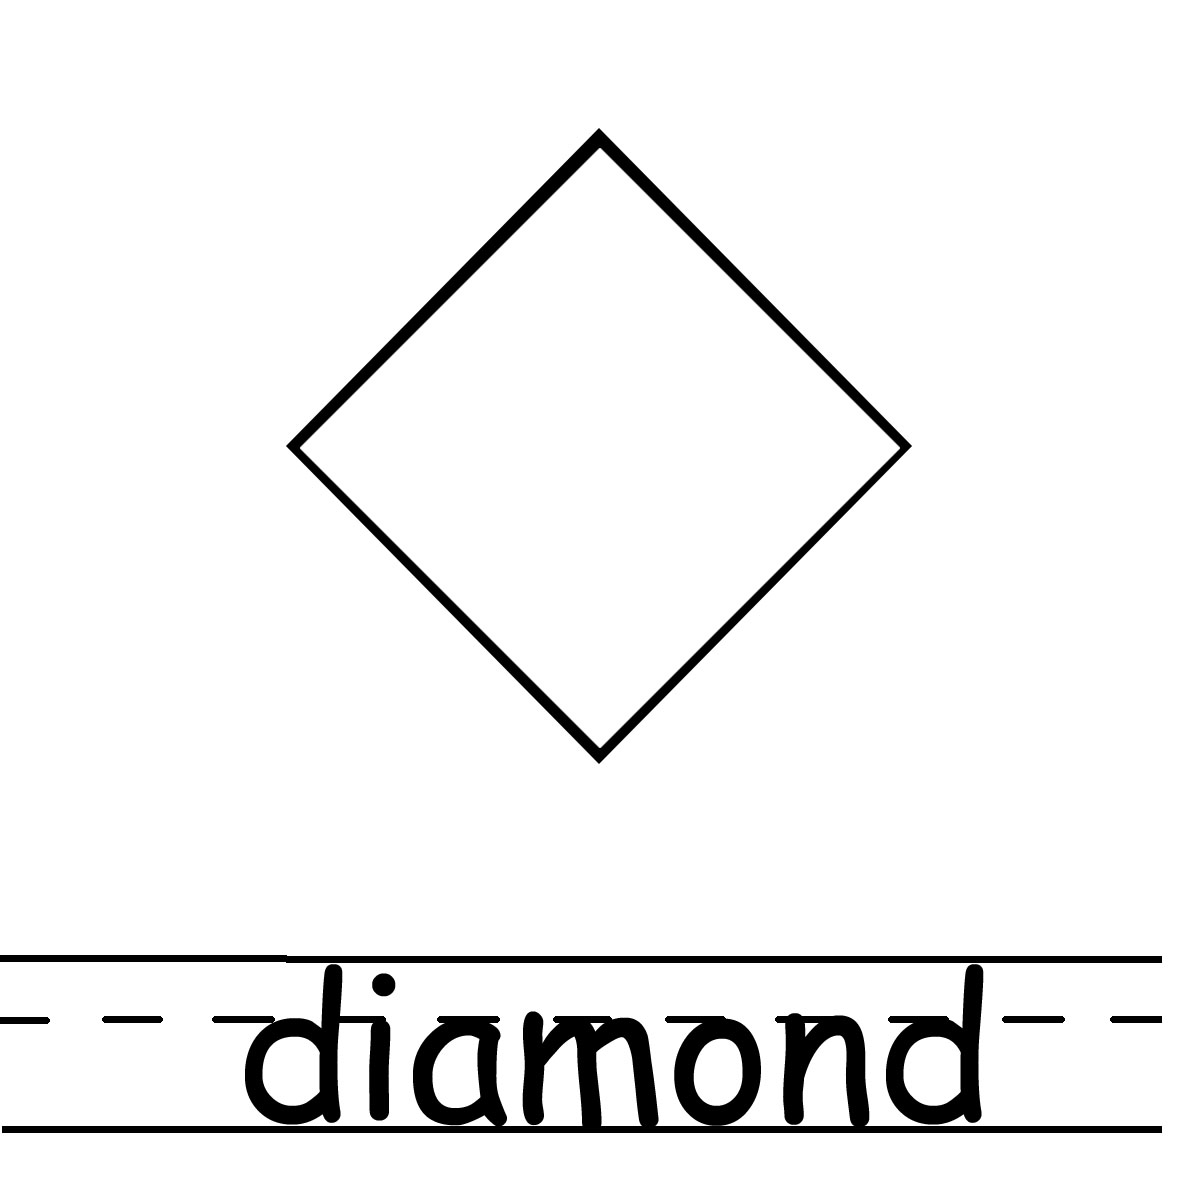 Black diamond shape clip art.